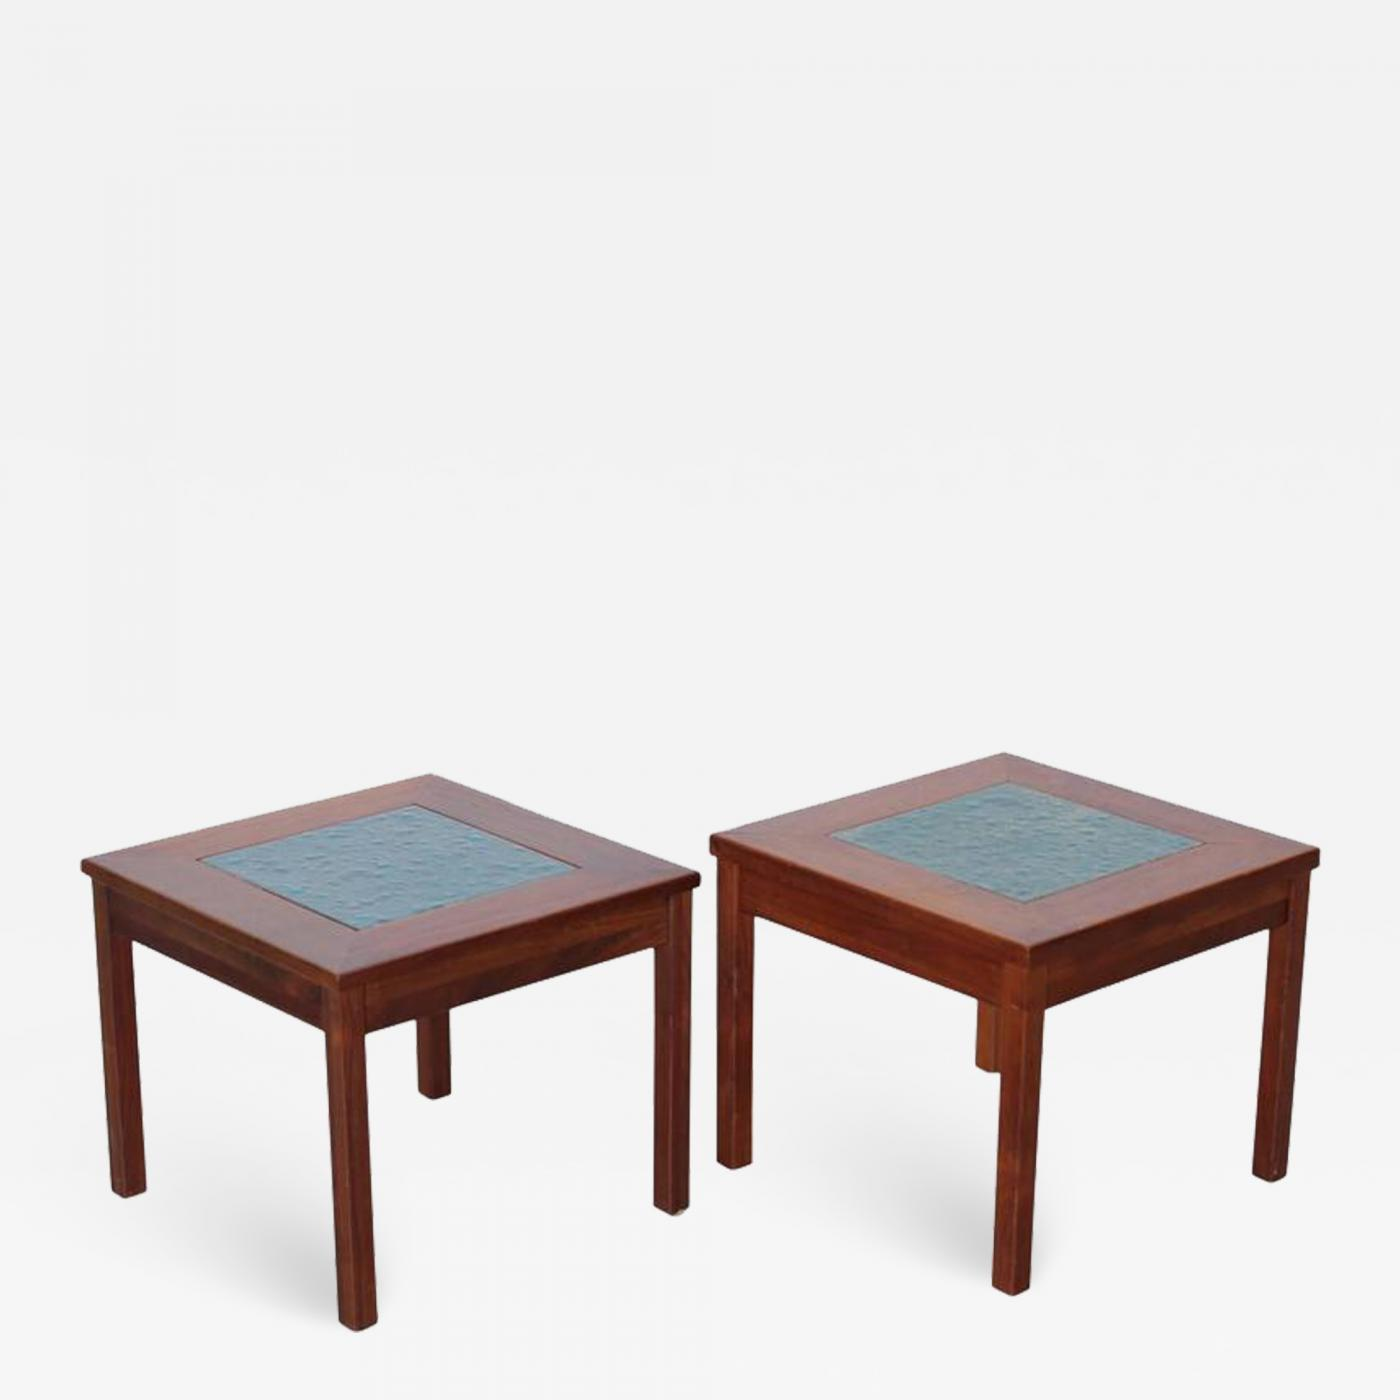 john keal pair for brown saltman constellation end tables nightstands table antique wood paint side living room broyhill furniture sets frosted glass lazy boy corporate office